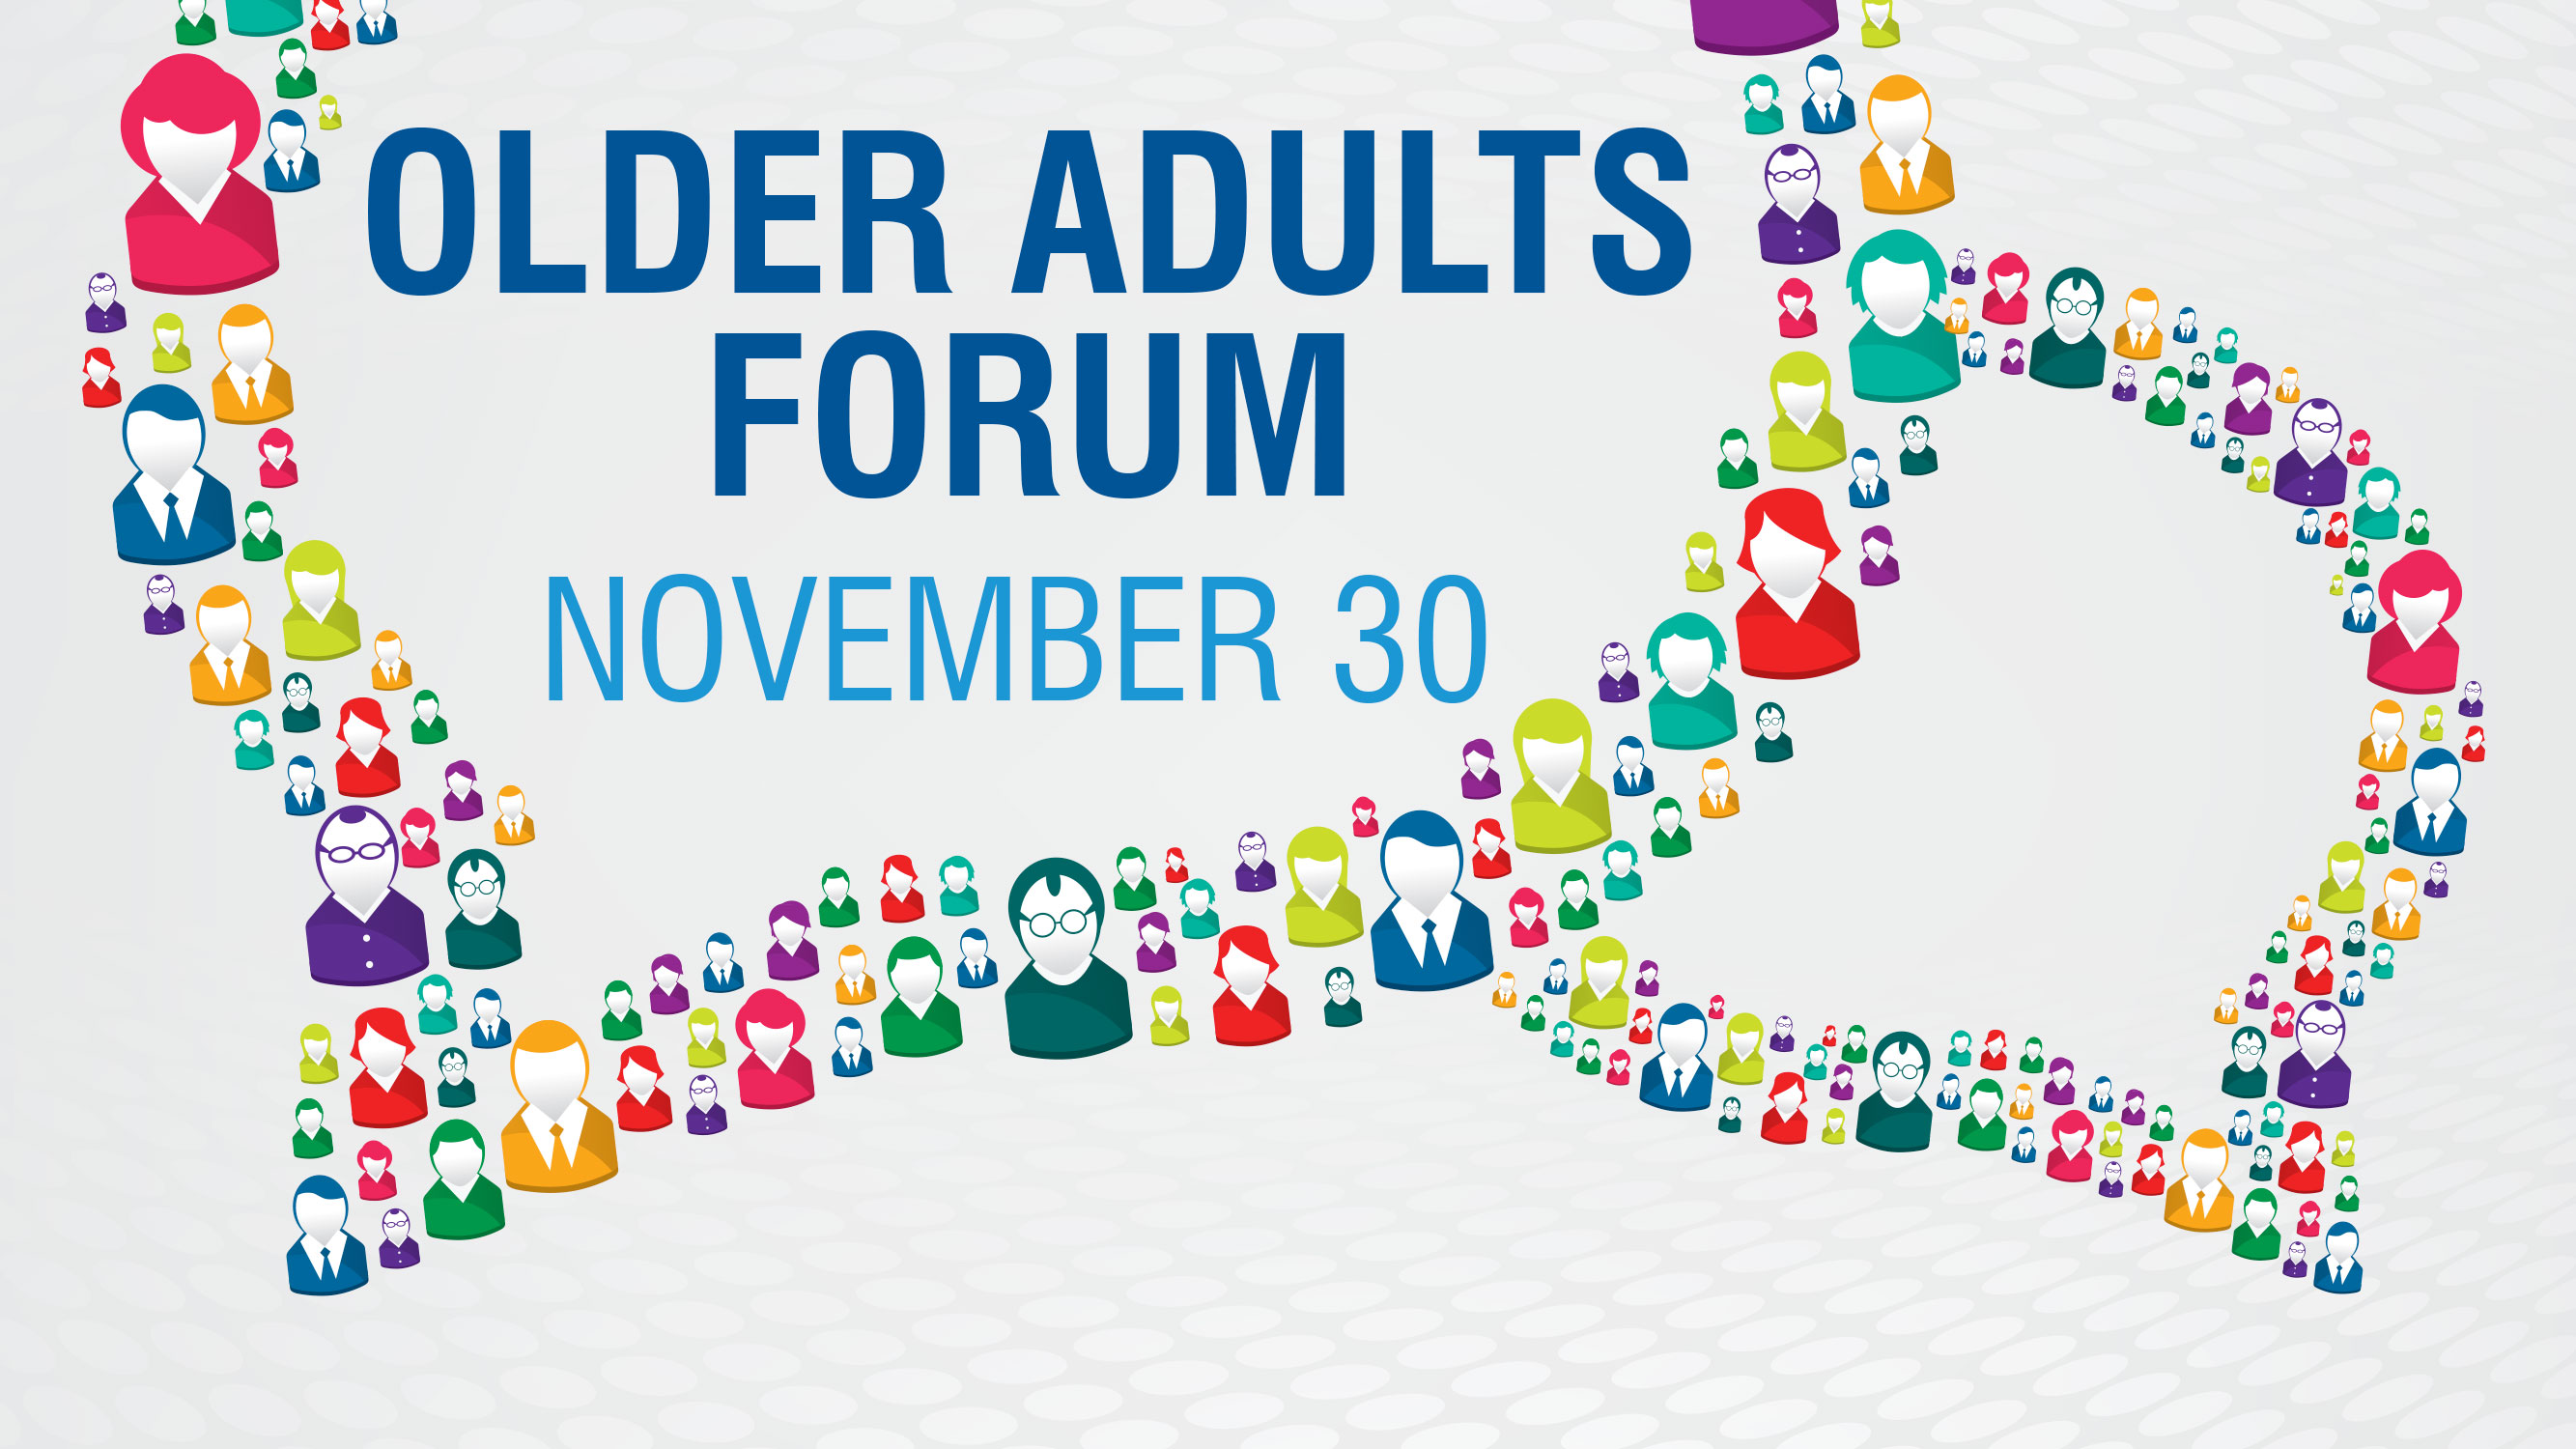 St. Catharines older adults invited to community forum